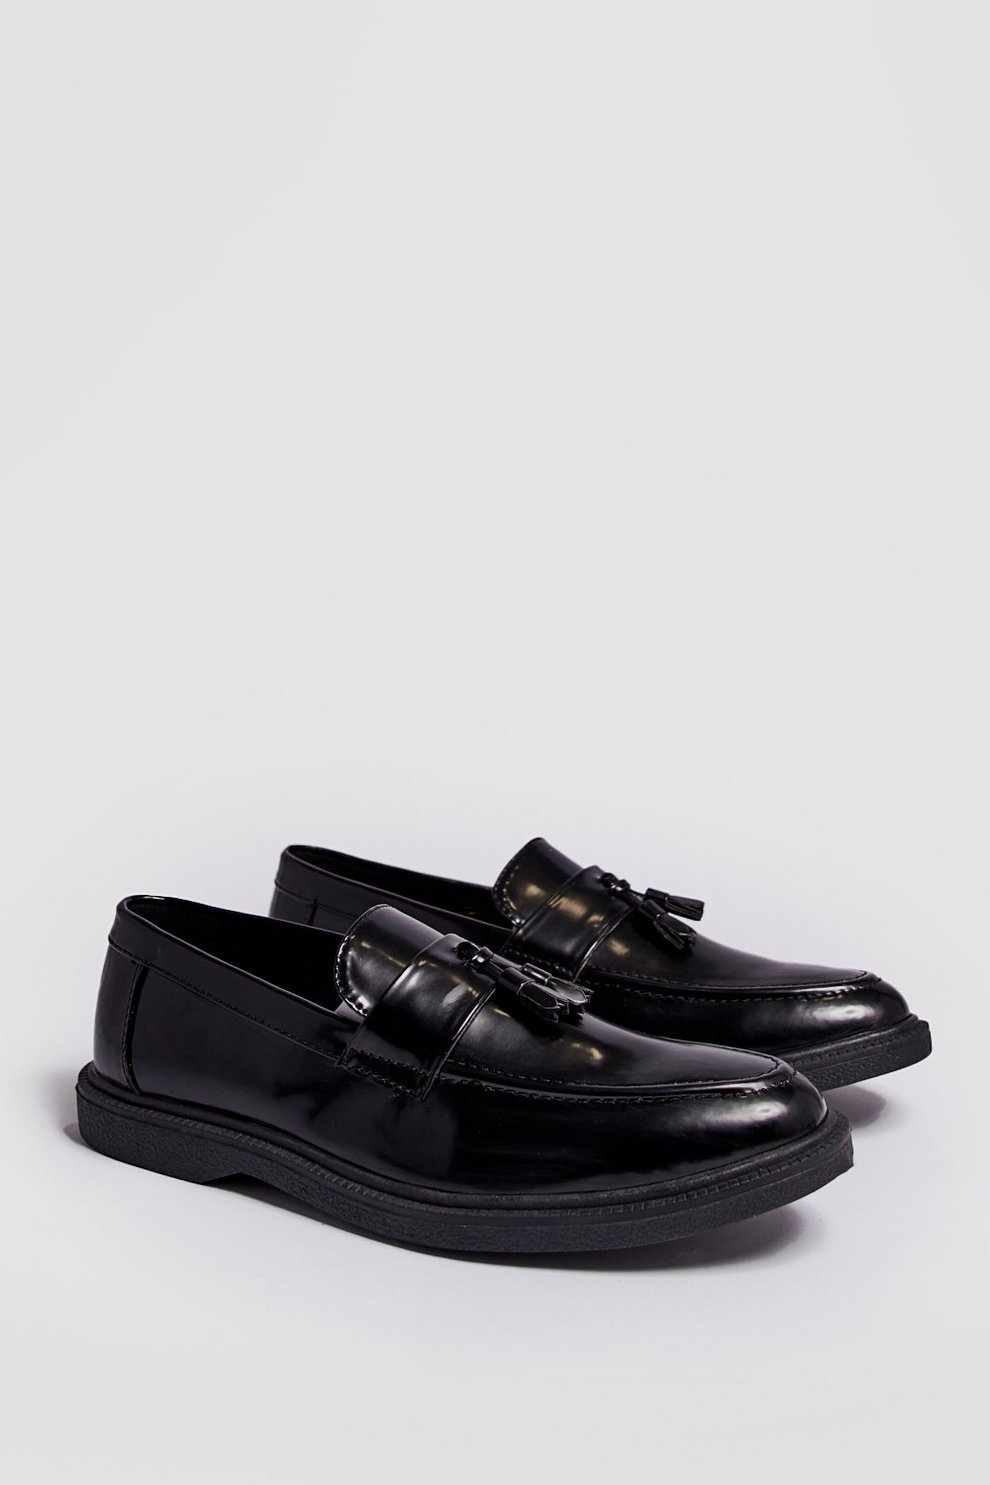 4f0b81b8234 Faux Leather Heavy Soled Tassel Loafer